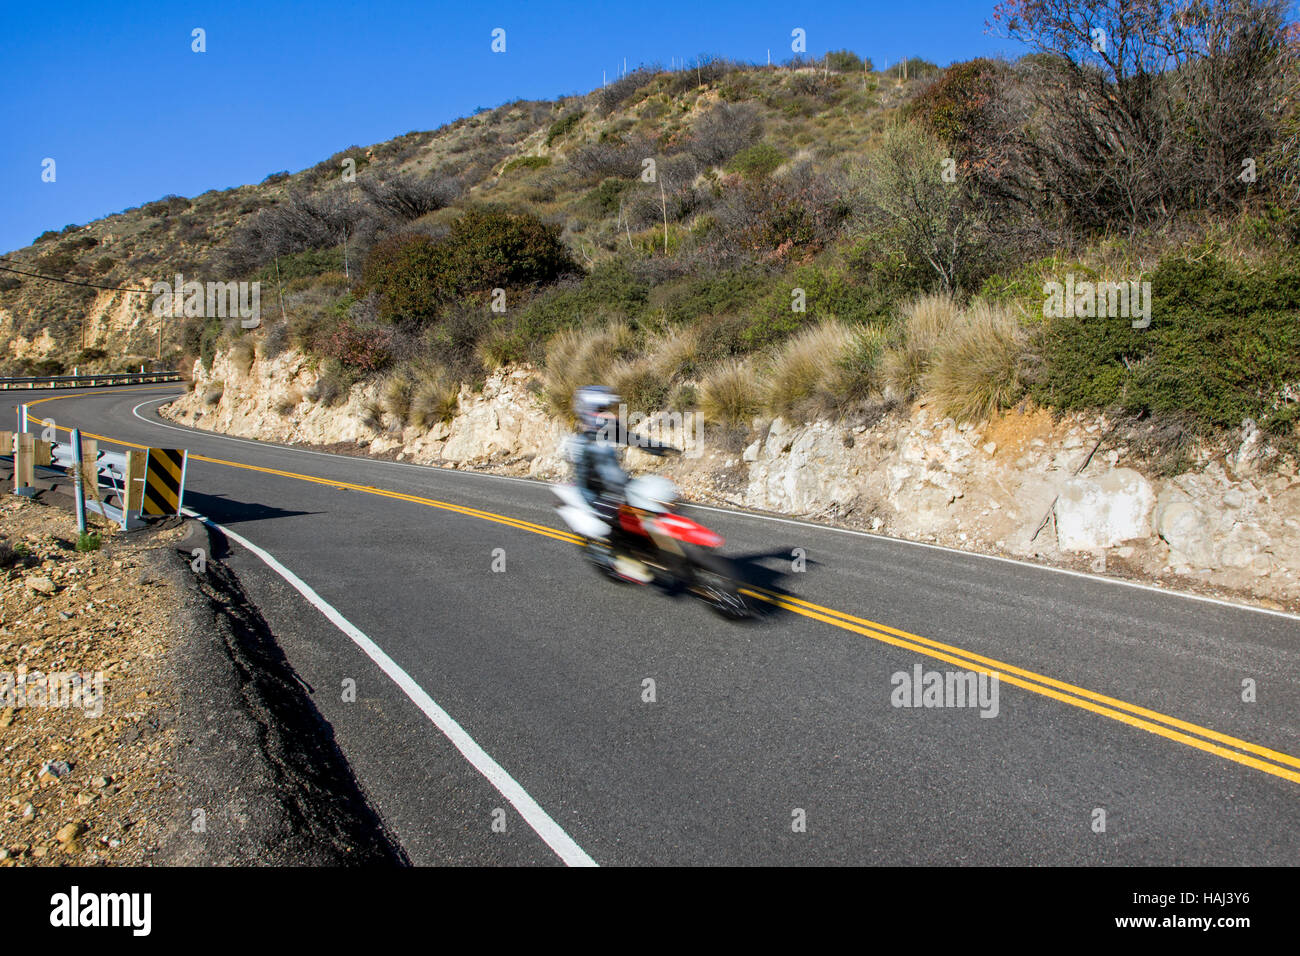 Action blur of a motorcycle rider on a road near Rt. 1 and Malibu, California, USA - Stock Image